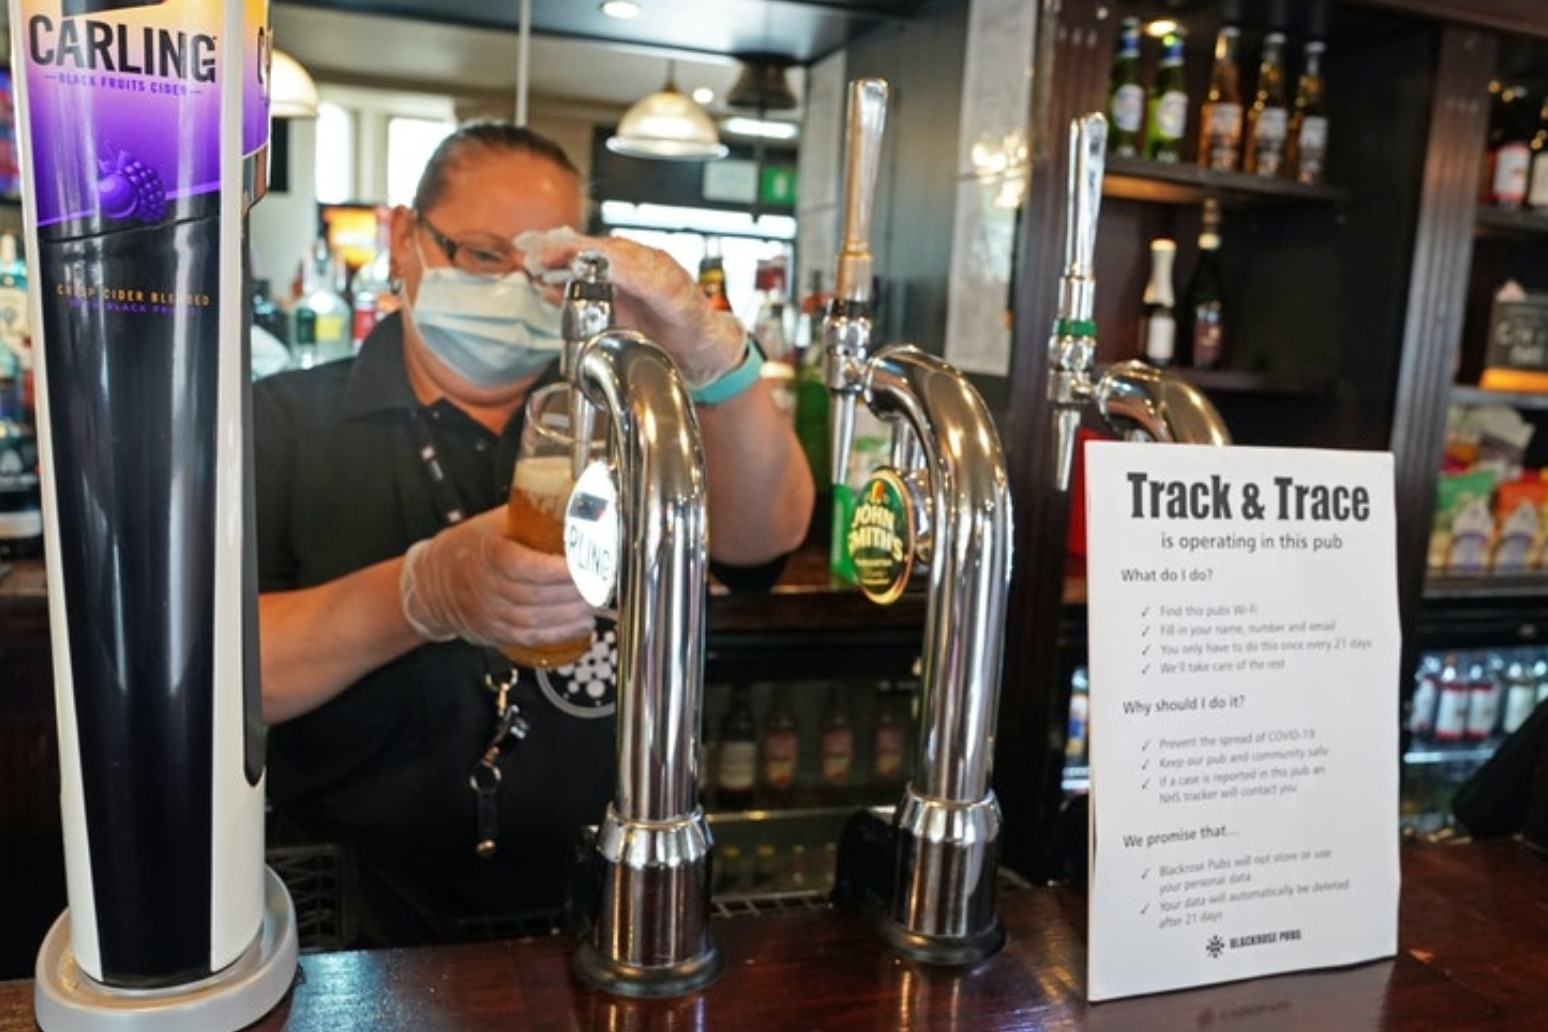 Bars shut due to coronavirus cases just days after reopening